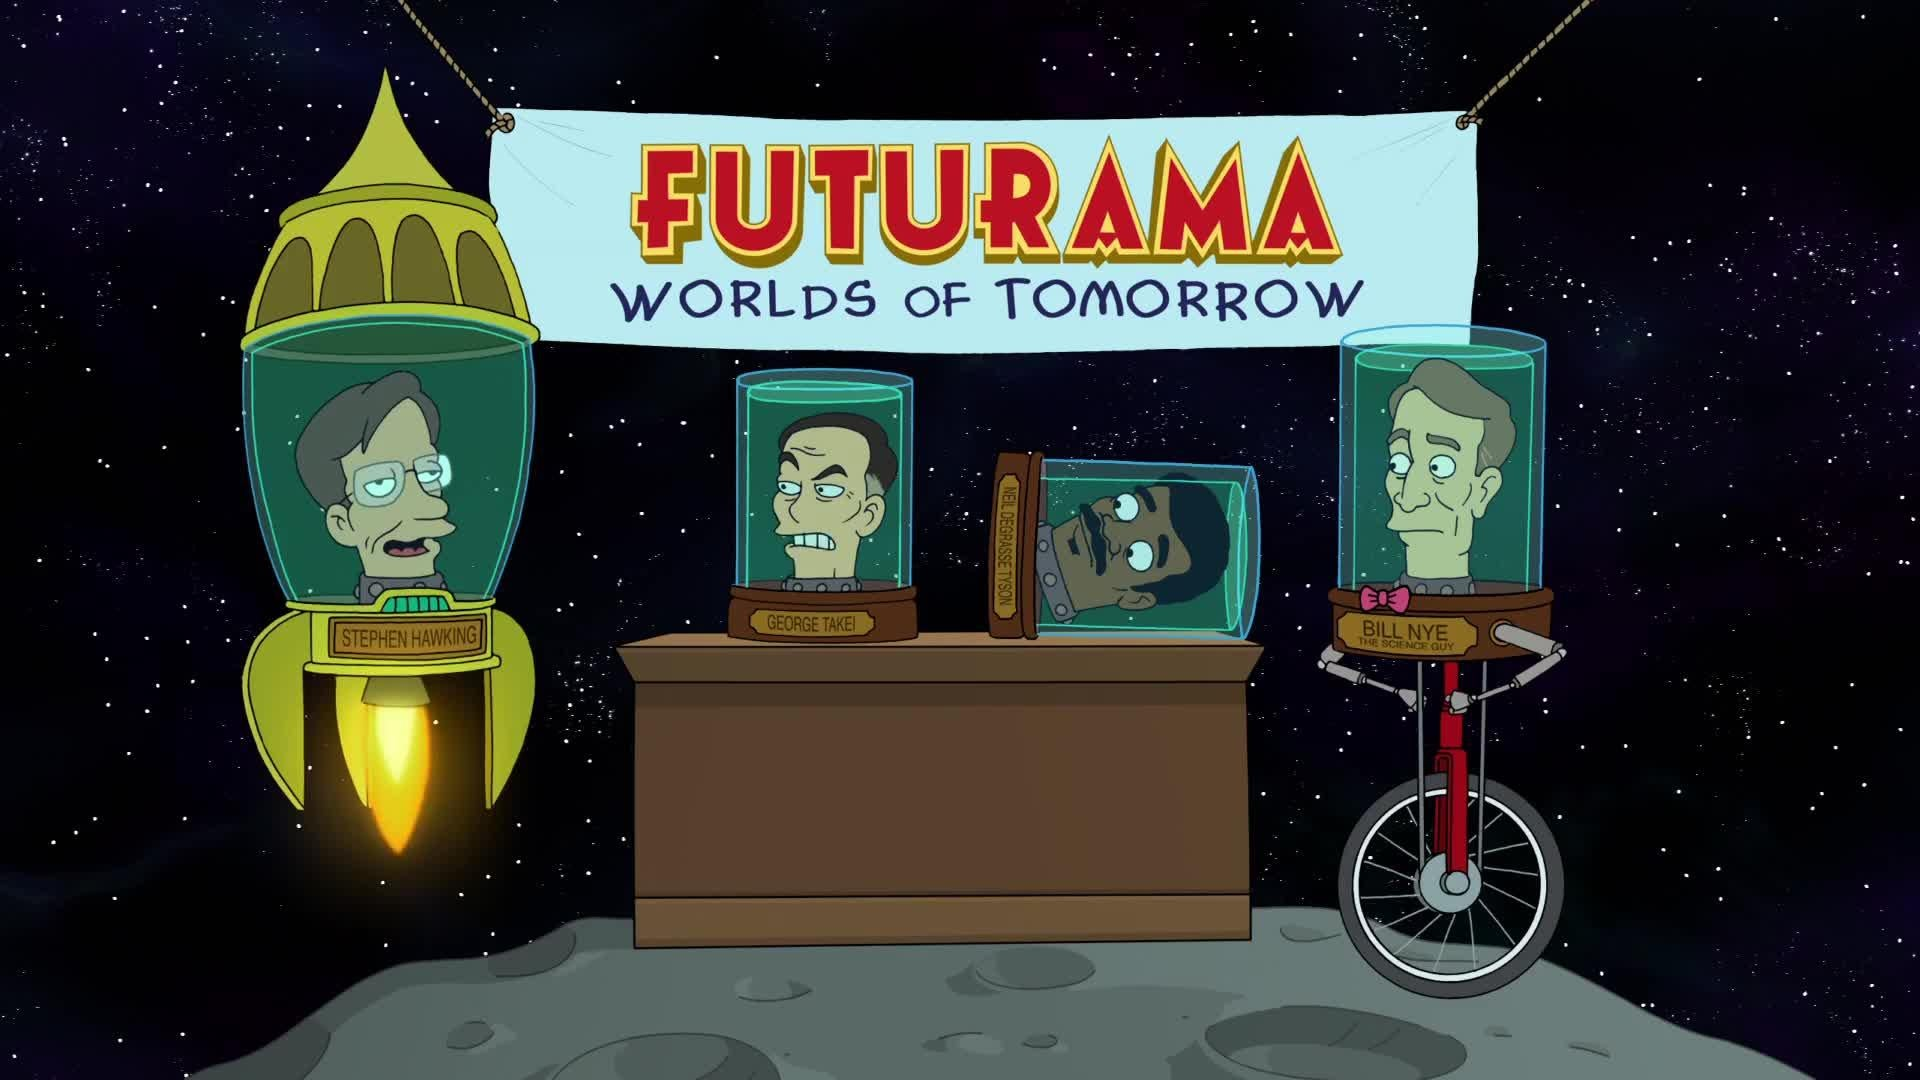 Futurama Worlds of Tomorrow - Official Launch Date Trailer - Science Heads Futurama Worlds of Tomorrow - Official Launch Date Trailer - Science Heads Futurama Worlds of Tomorrow - Official Launch Date Trailer - Science Heads screen capture